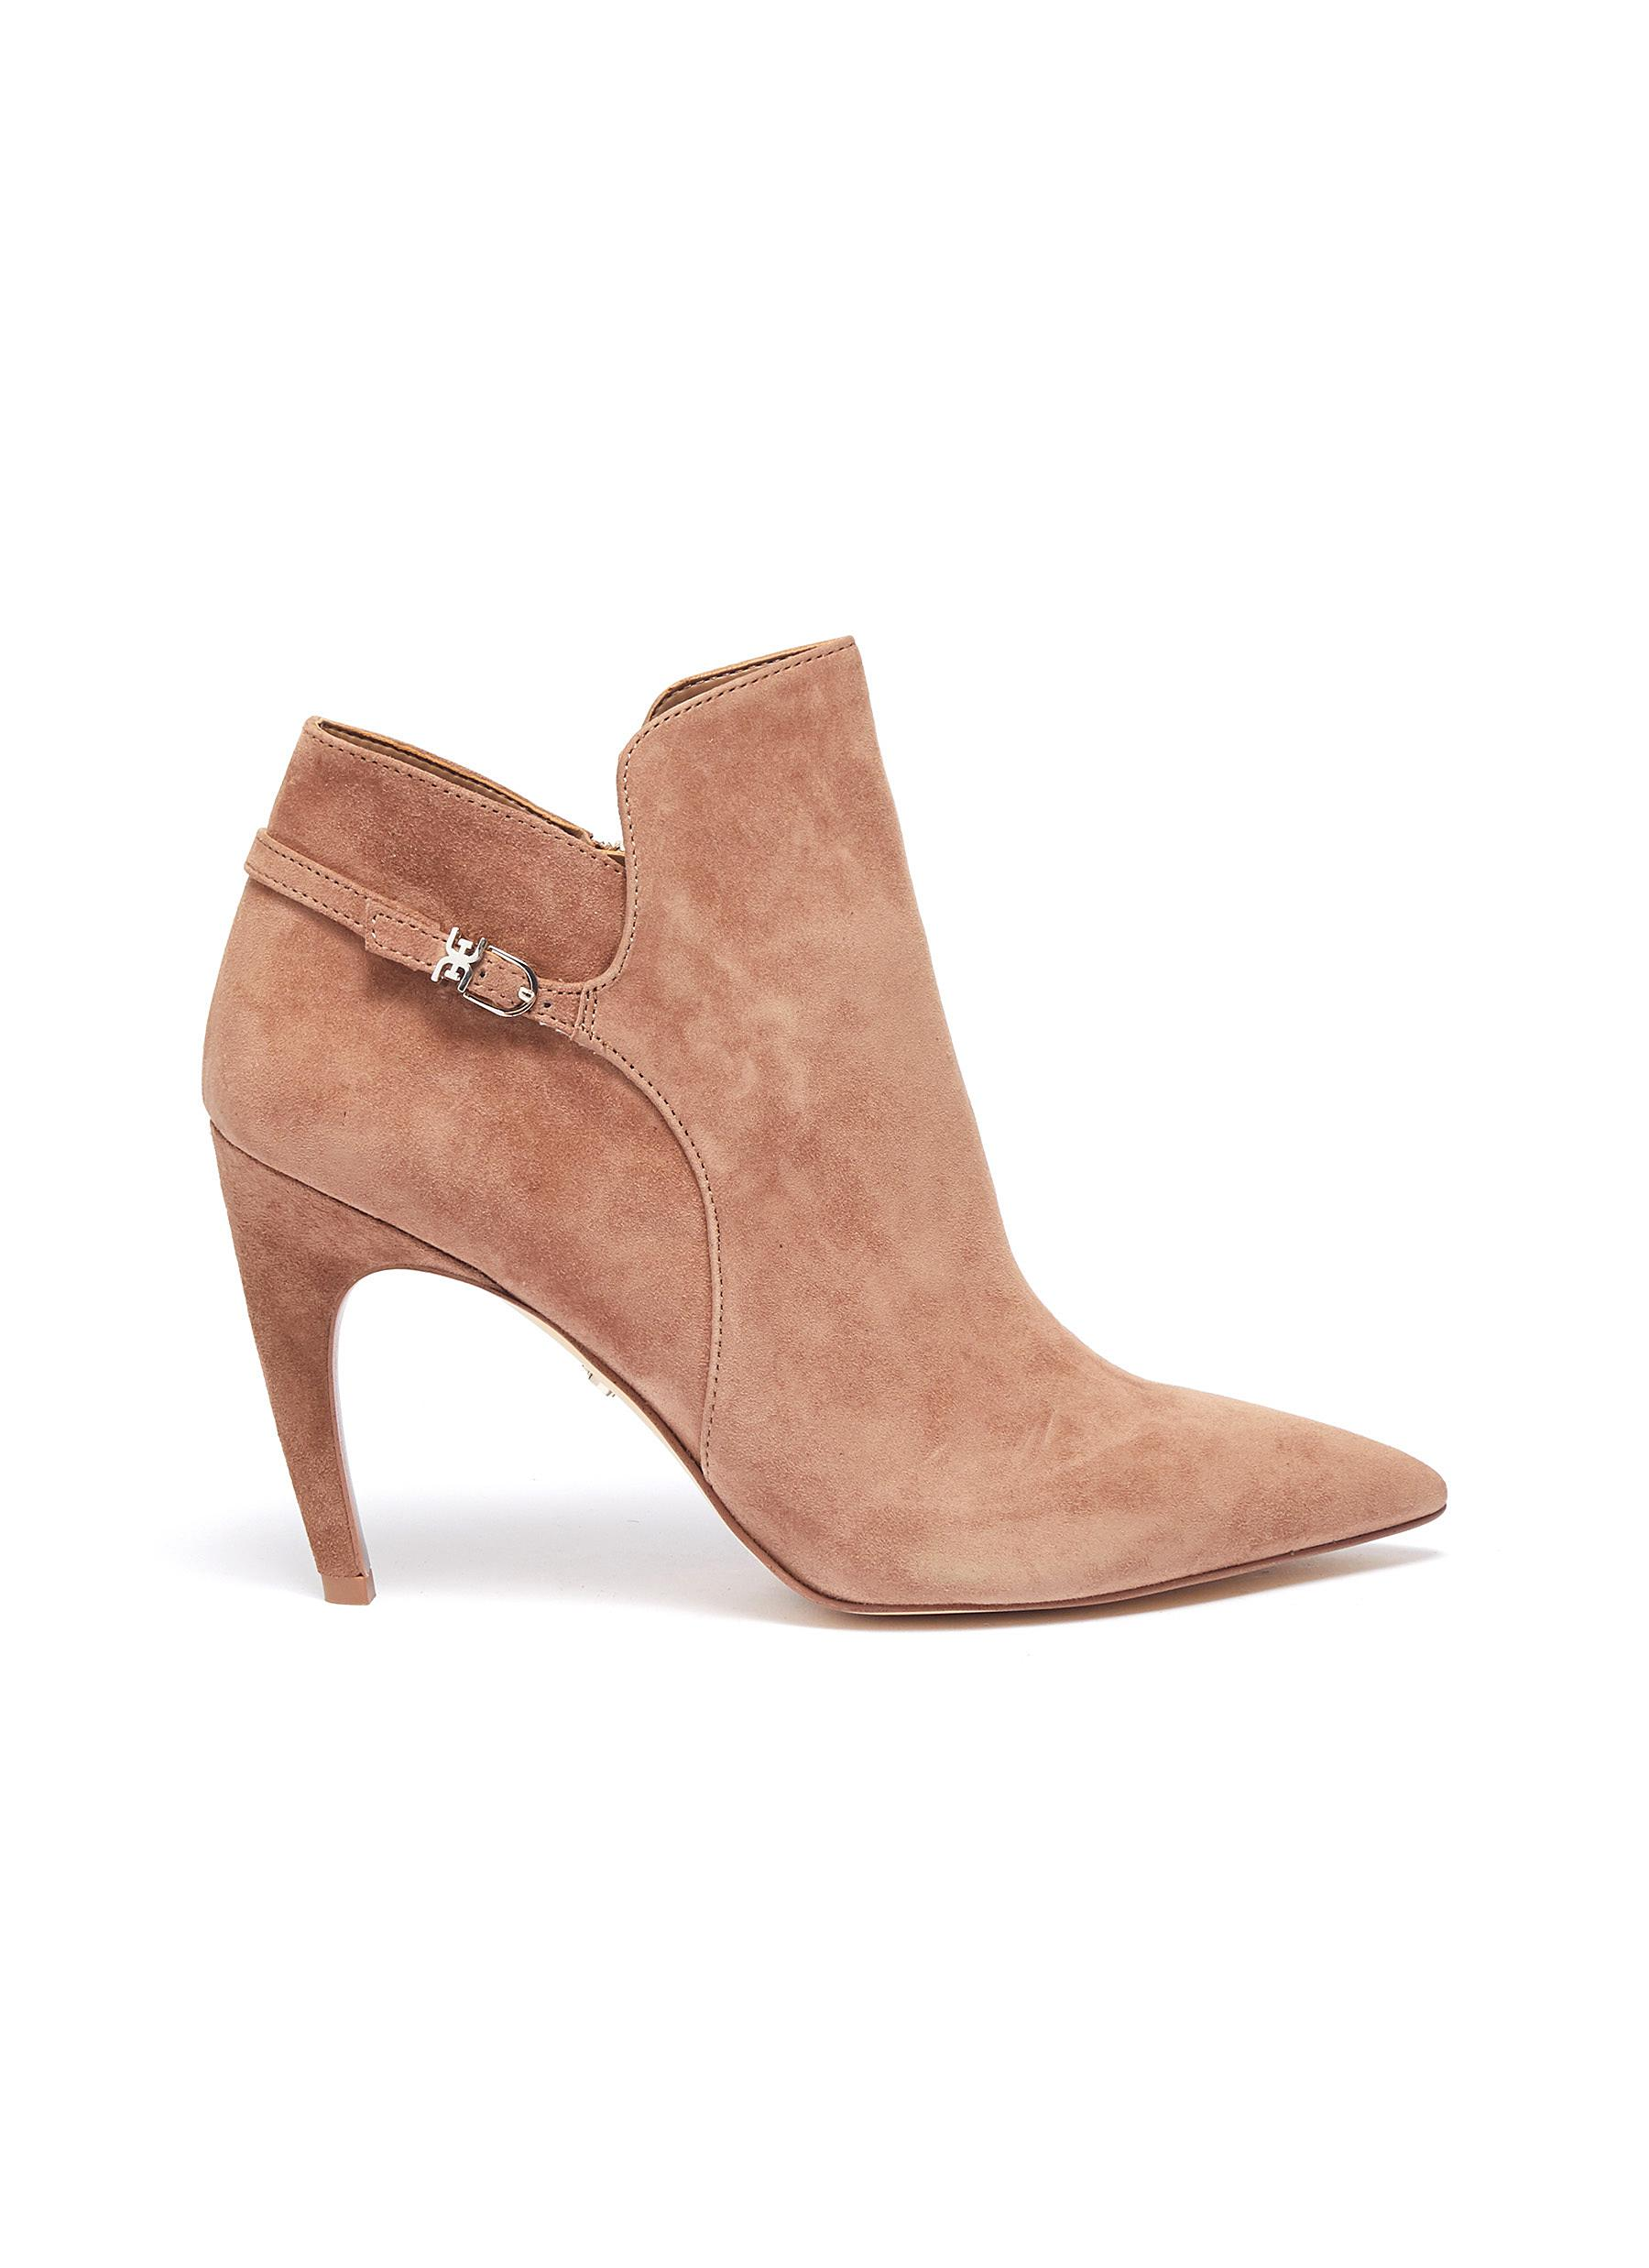 Fiora suede ankle boots by Sam Edelman